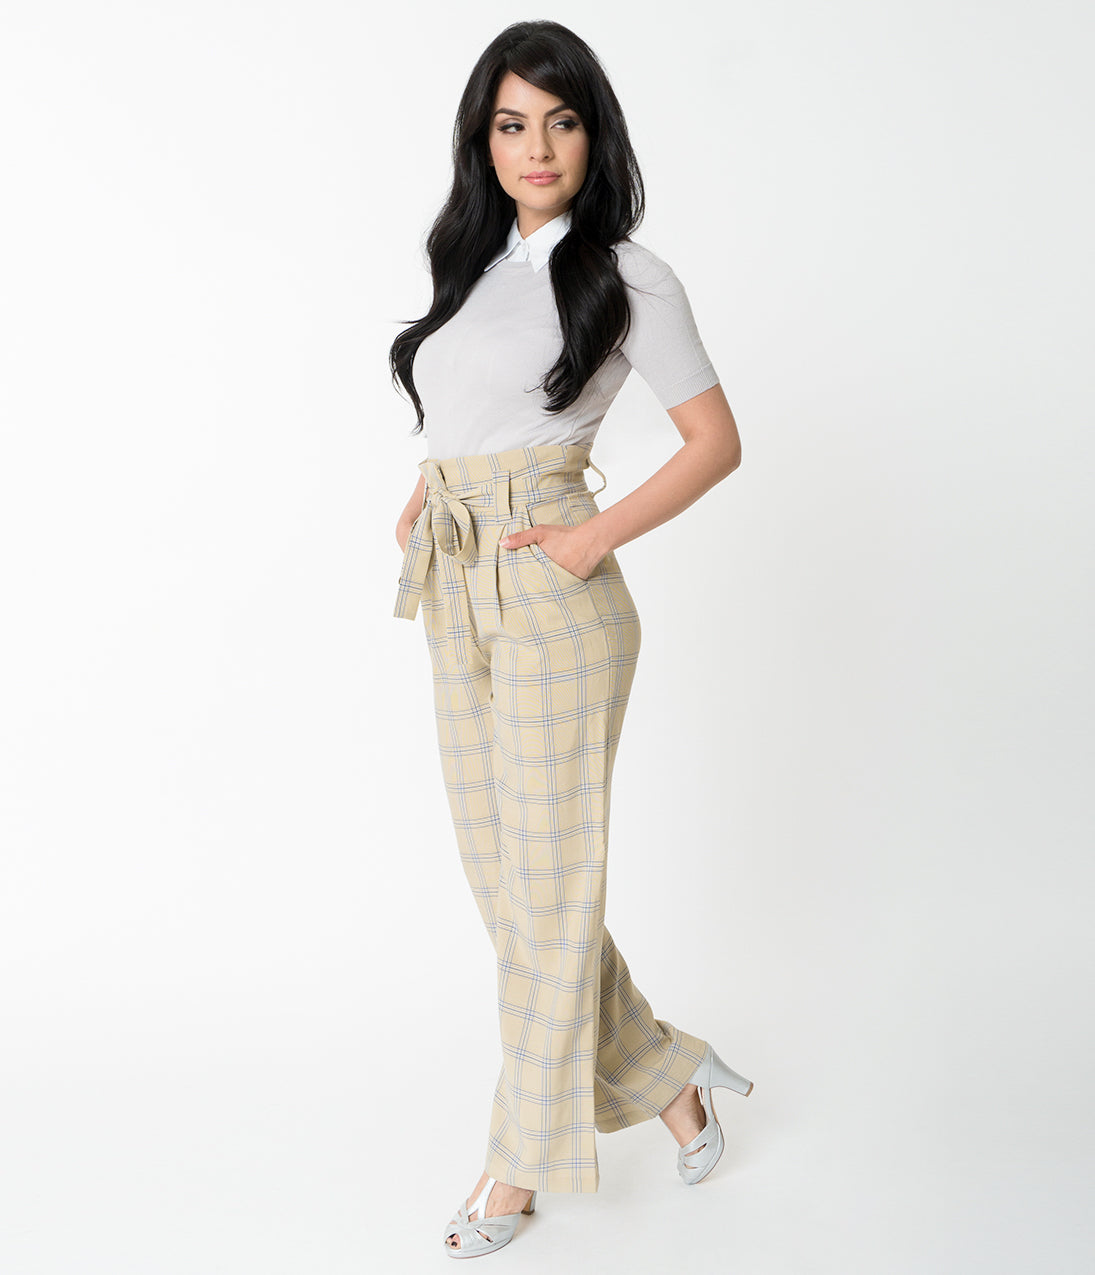 Vintage High Waisted Trousers, Sailor Pants, Jeans Vintage Style Tan Mustard Plaid Cici Trousers $58.00 AT vintagedancer.com